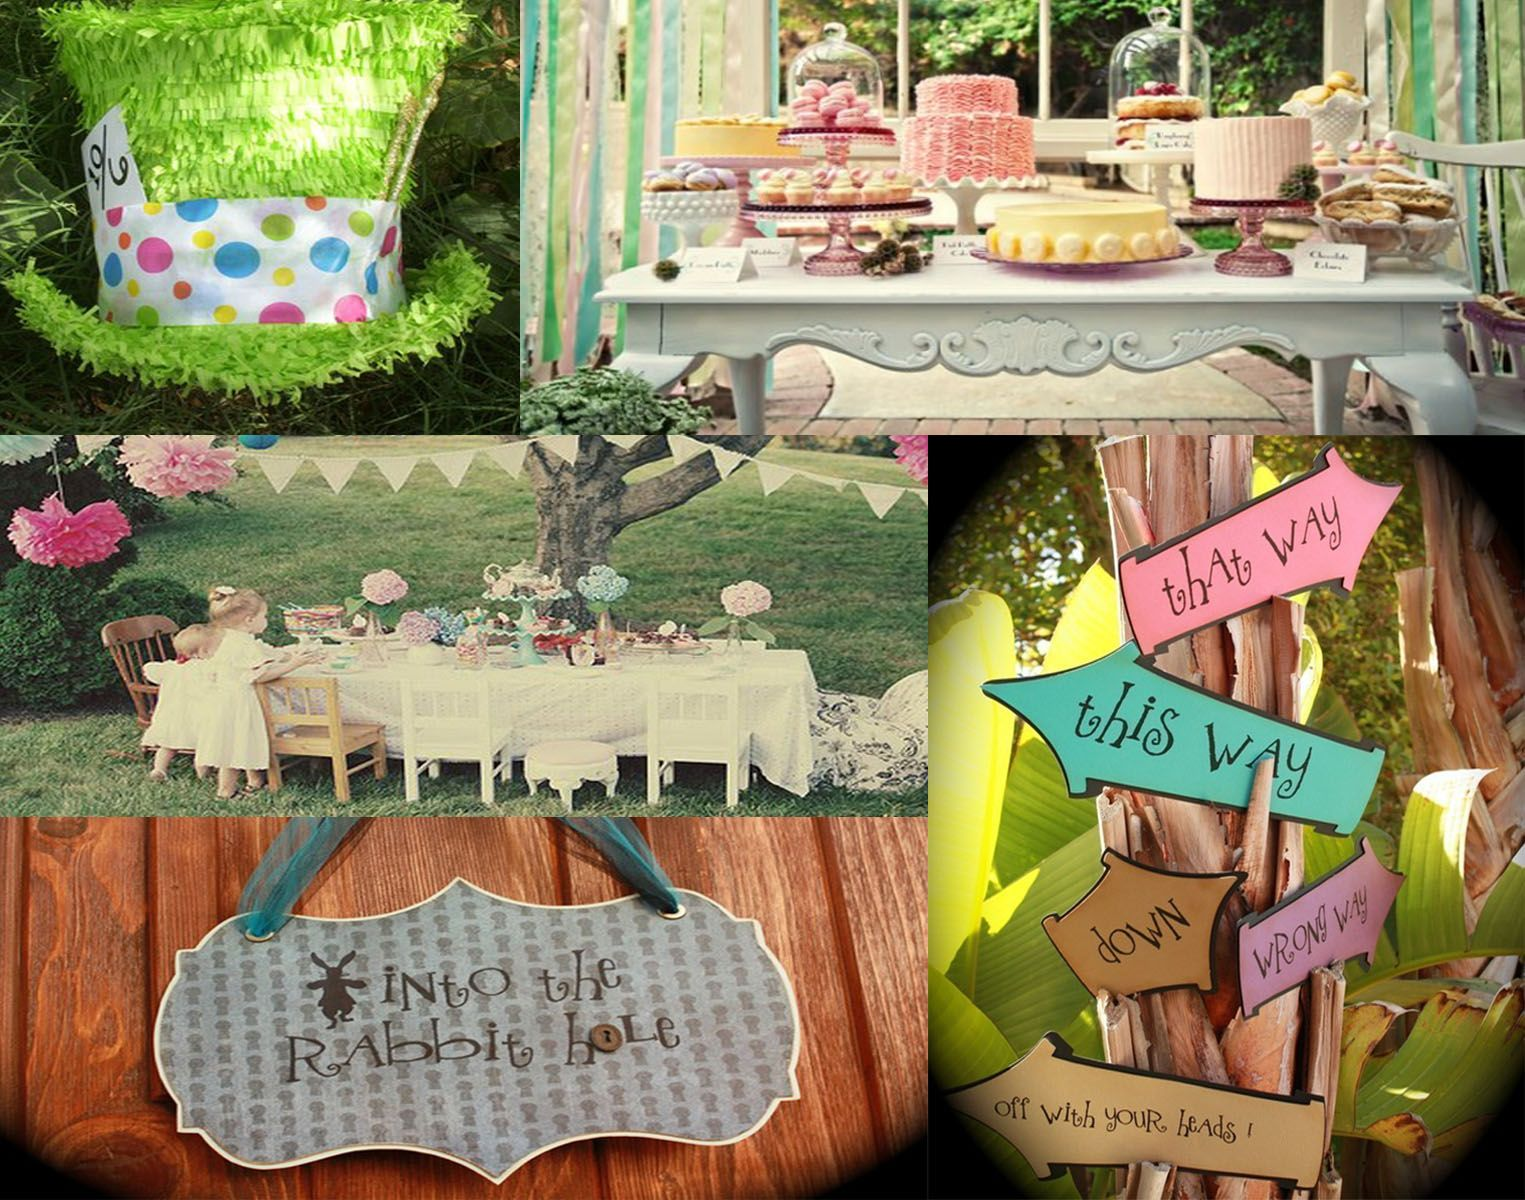 144 best bday ideas for kids images on Pinterest | Events, Baby ...